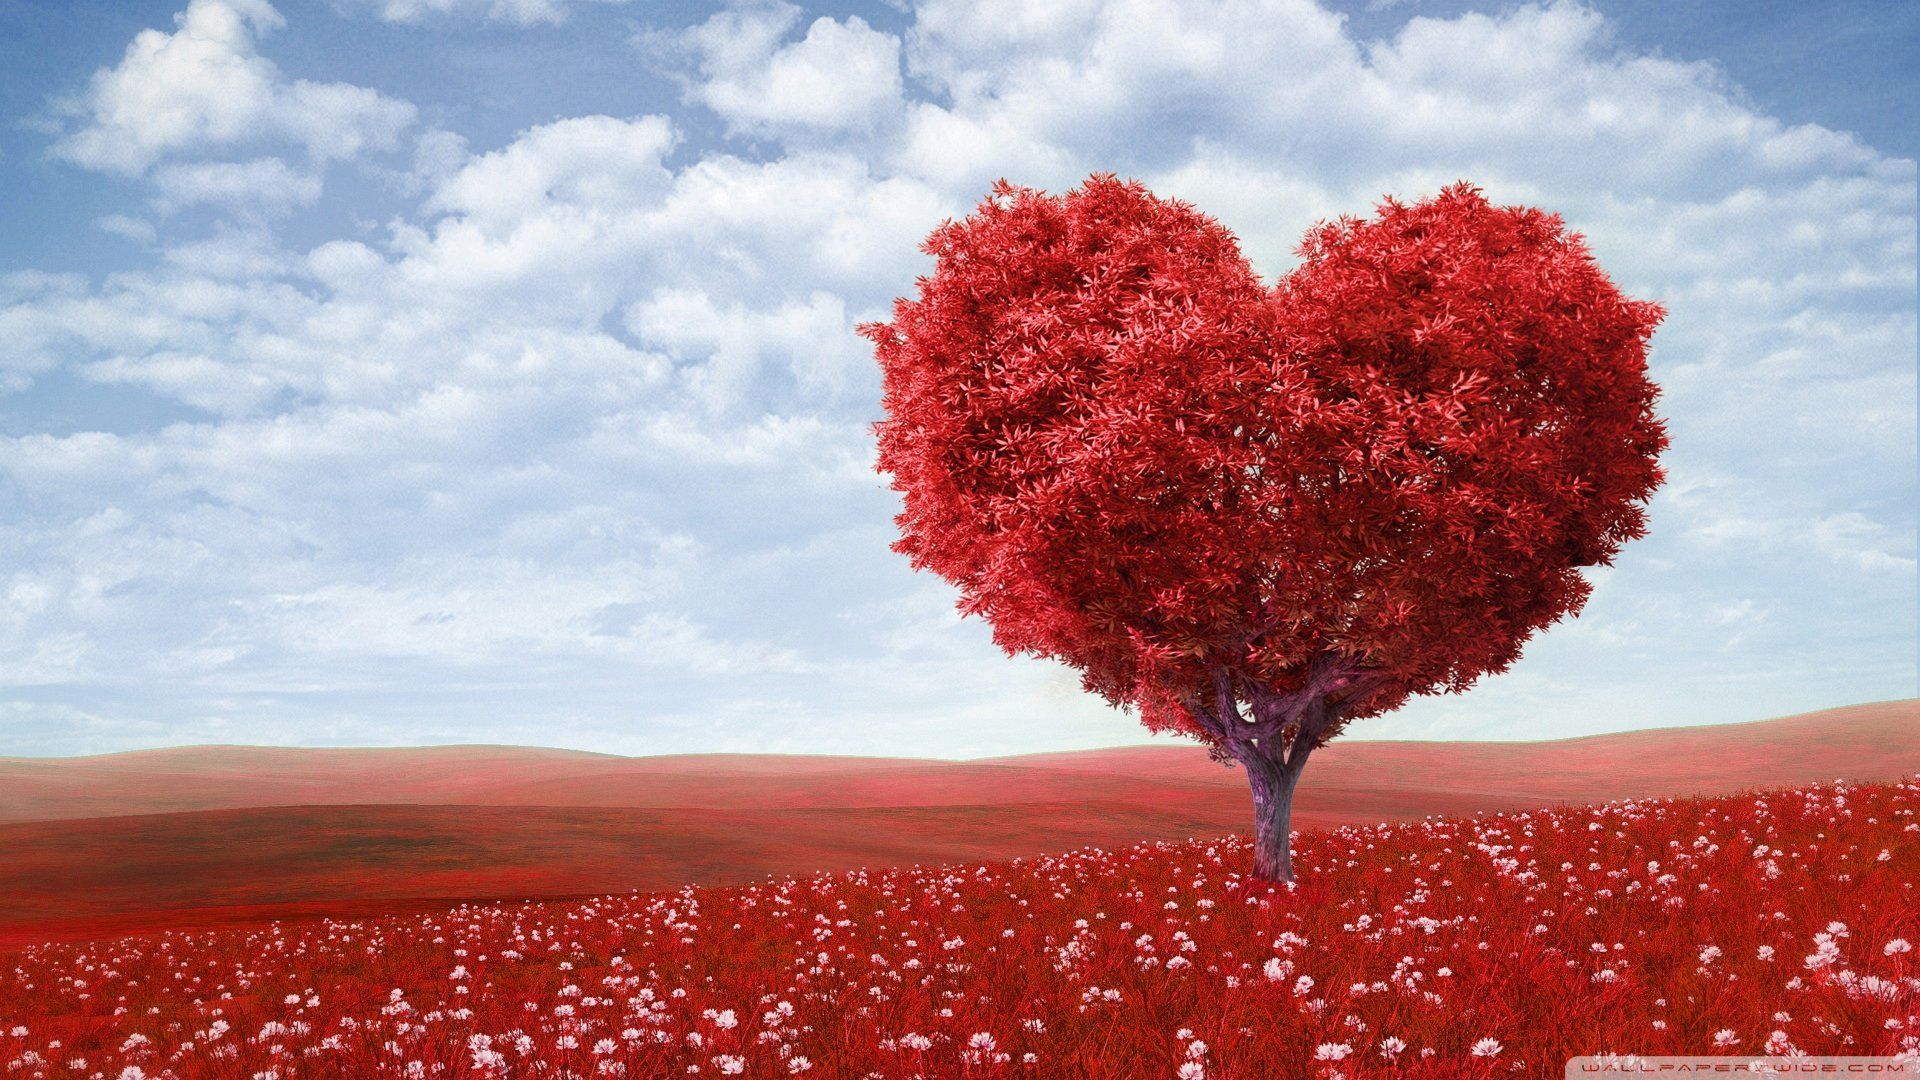 Beautifull Of The Love Tree Hd Wallpaper 1920x1080 See More On Classy Bro Love Wallpaper Heart Tree Red